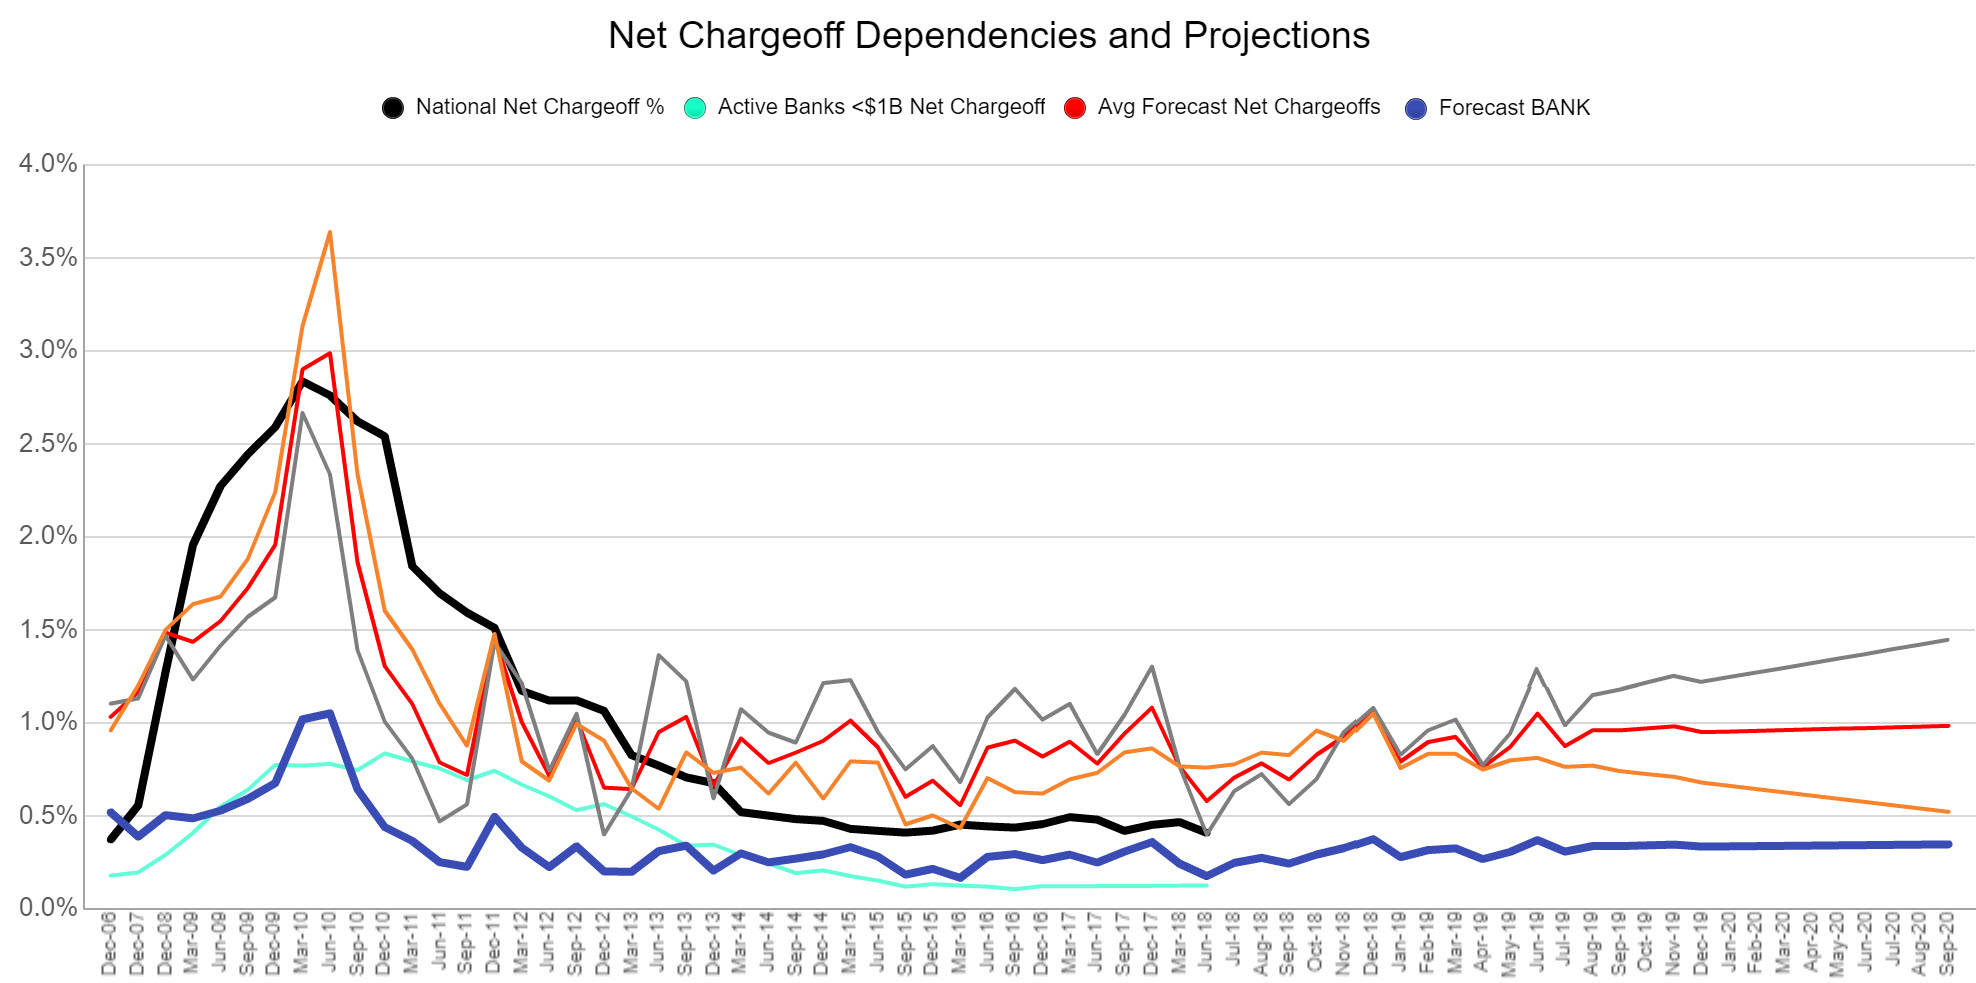 CECL Net Chargeoff Dependencies and Projections